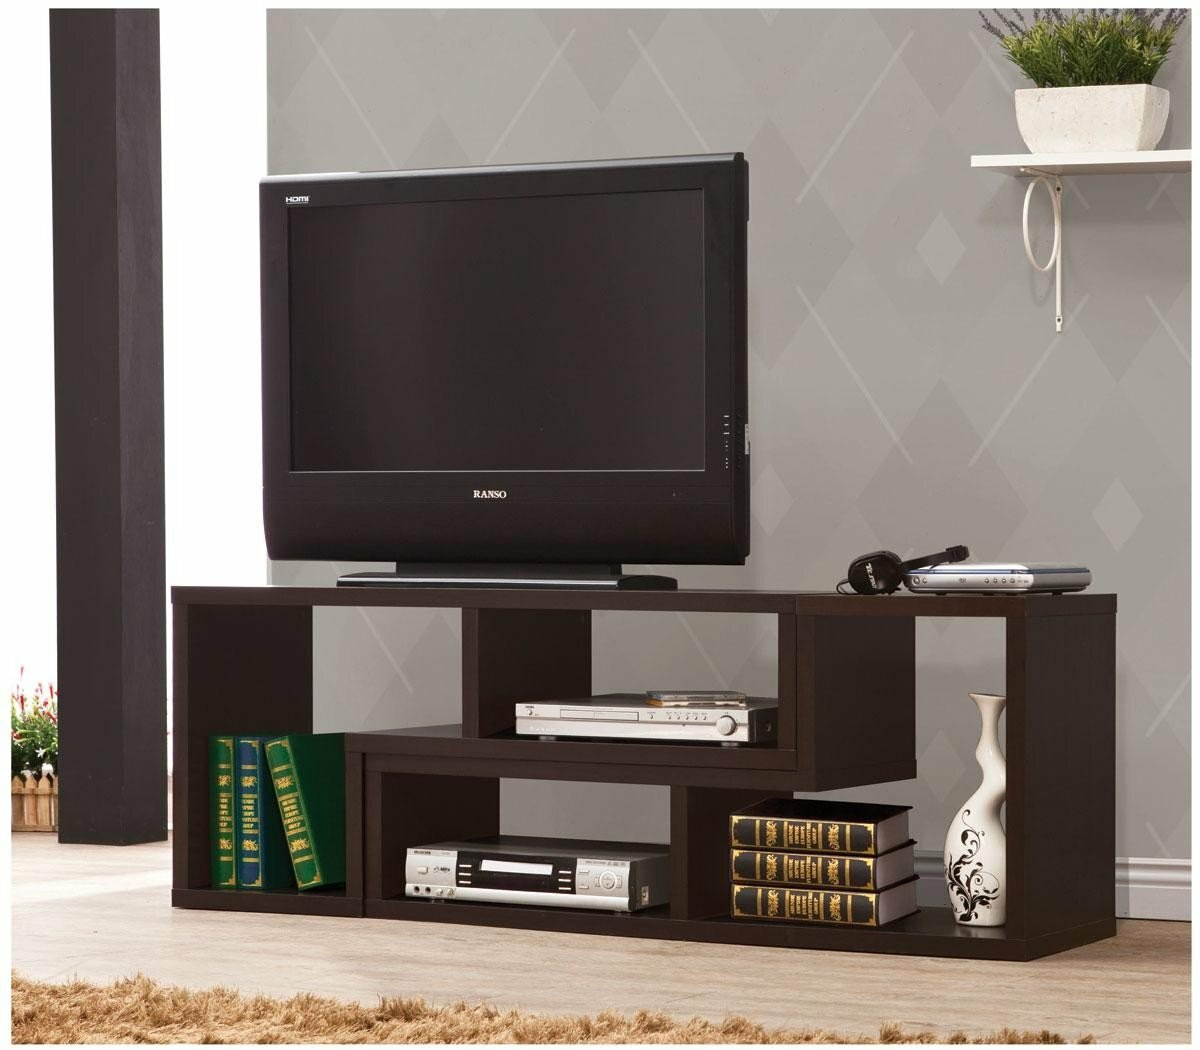 Manoel Tv Stand For Tvs Up To 50 Inches